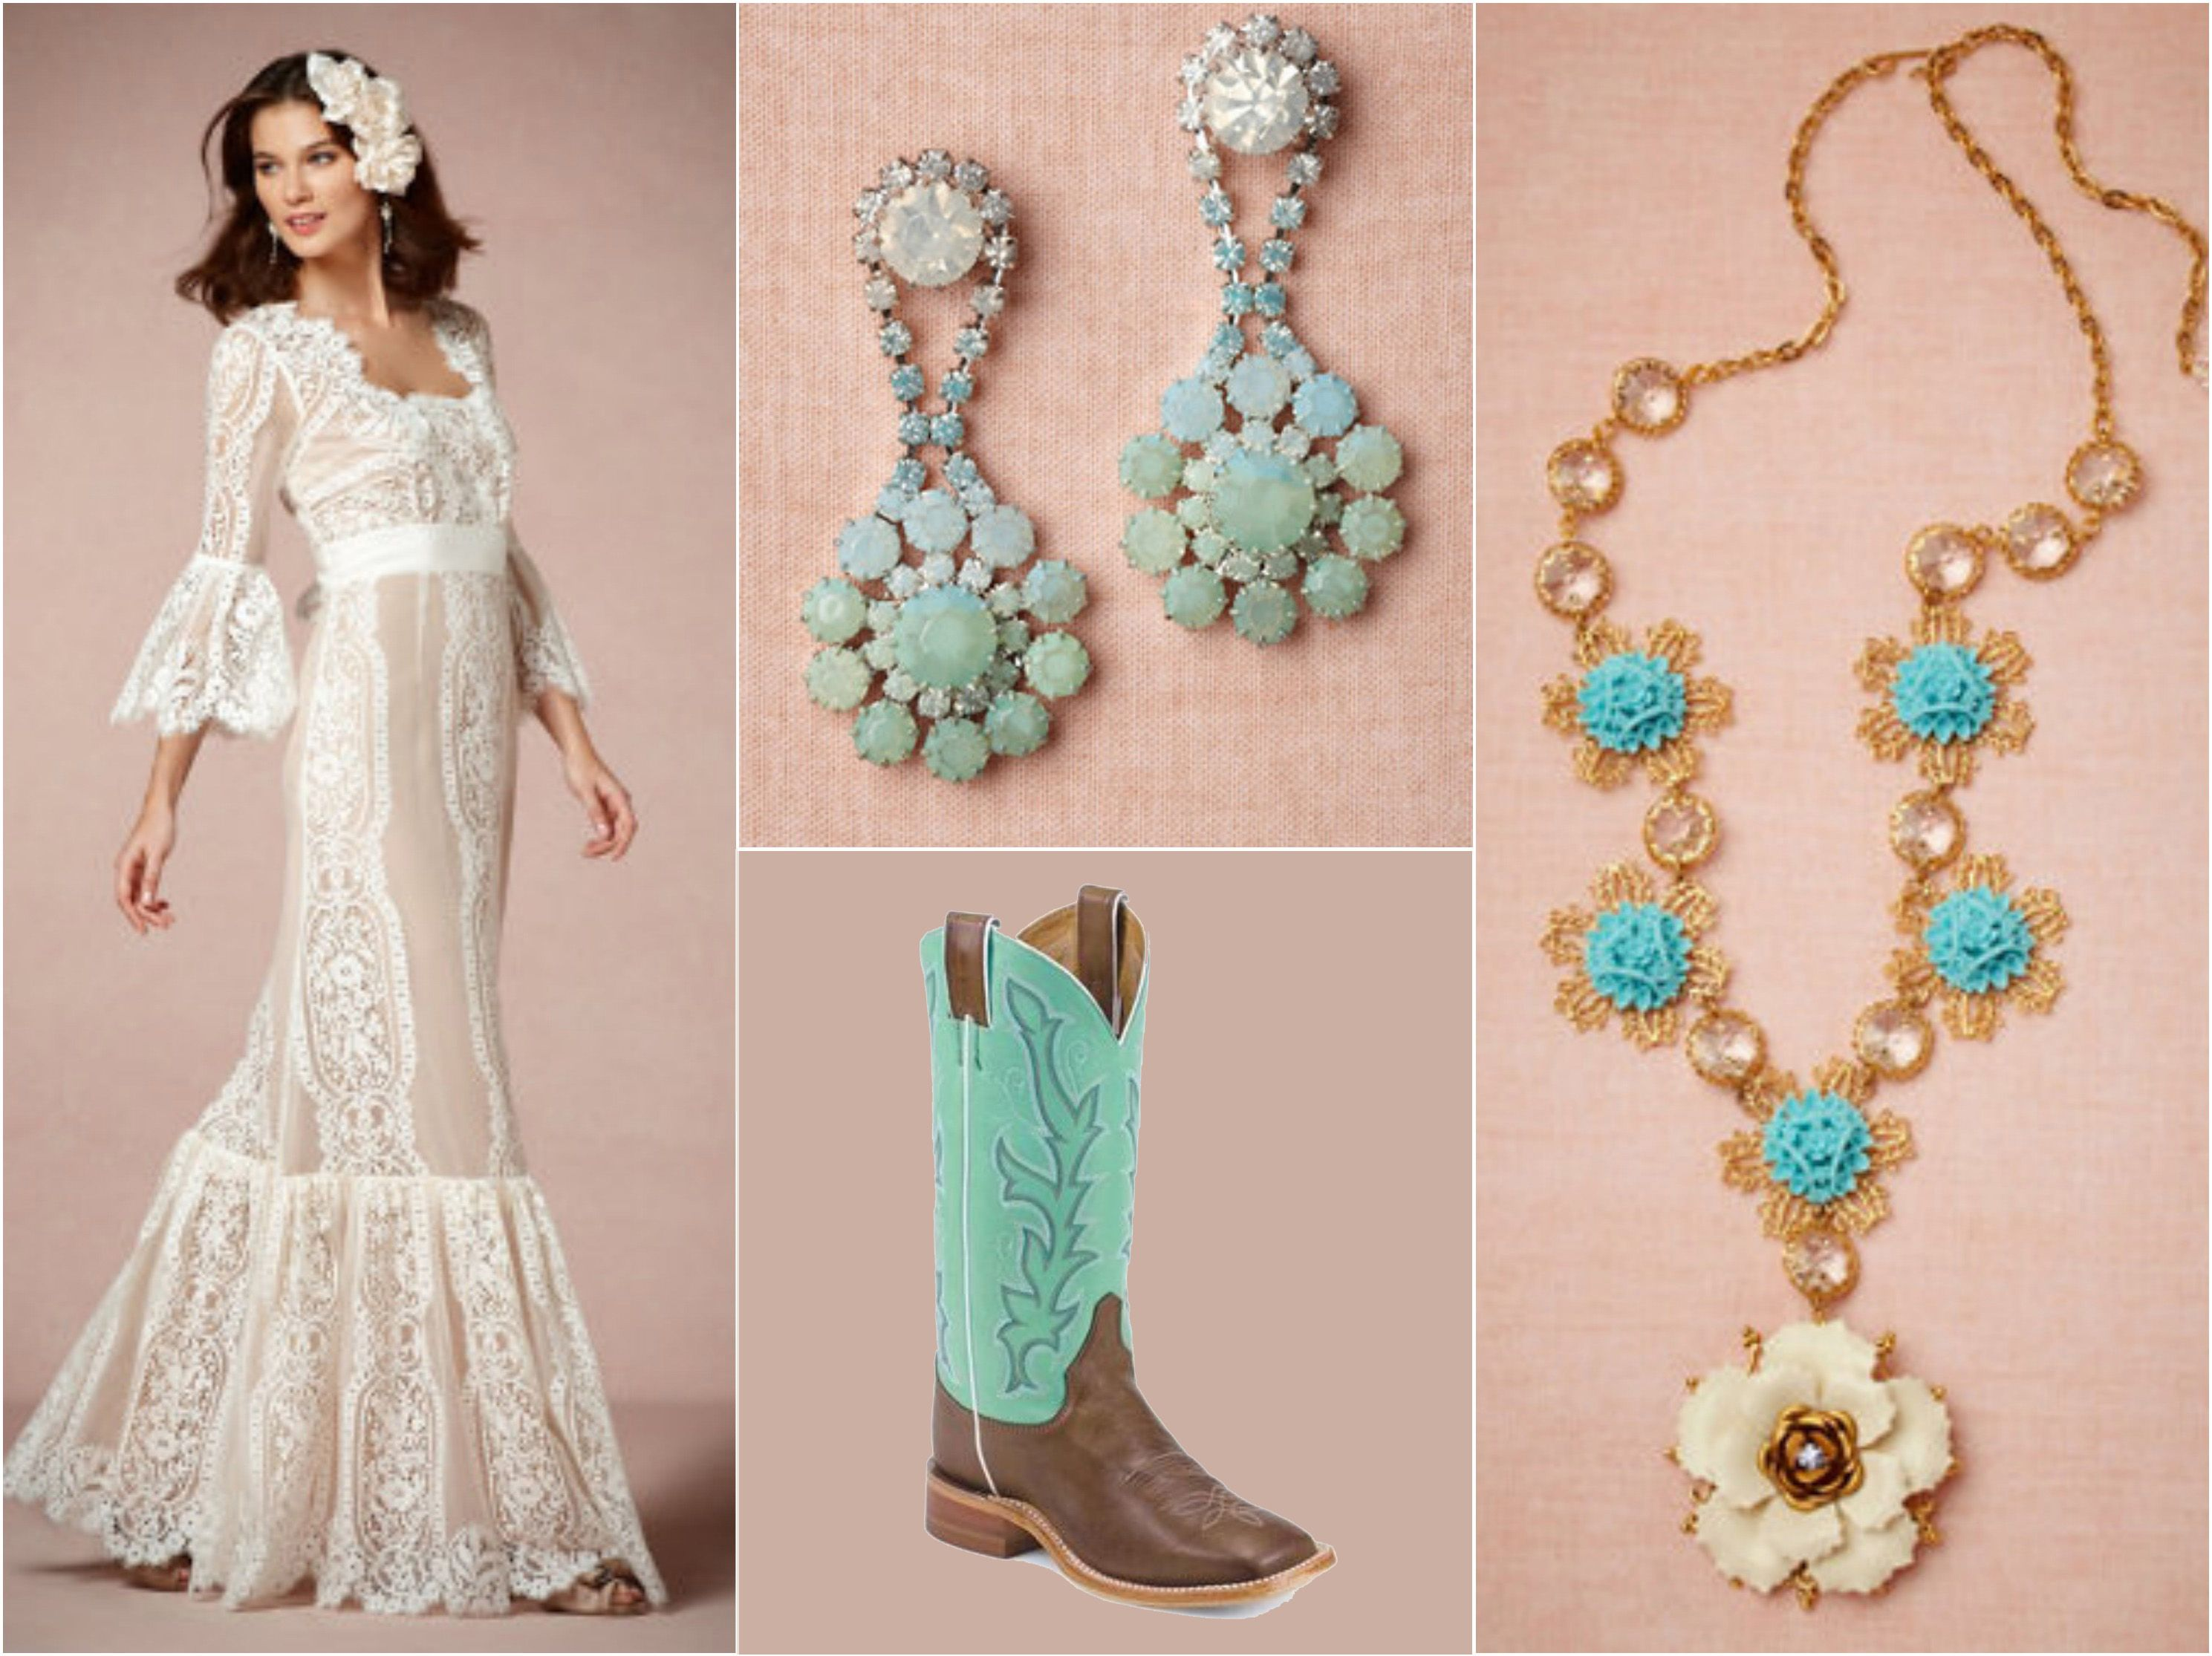 s fortuitous loved category earrings dress bridal wedding and sweet grandmother dallas amazing these shoes ring blog mom my look i helped complete she as foodies with moments emilychris sash